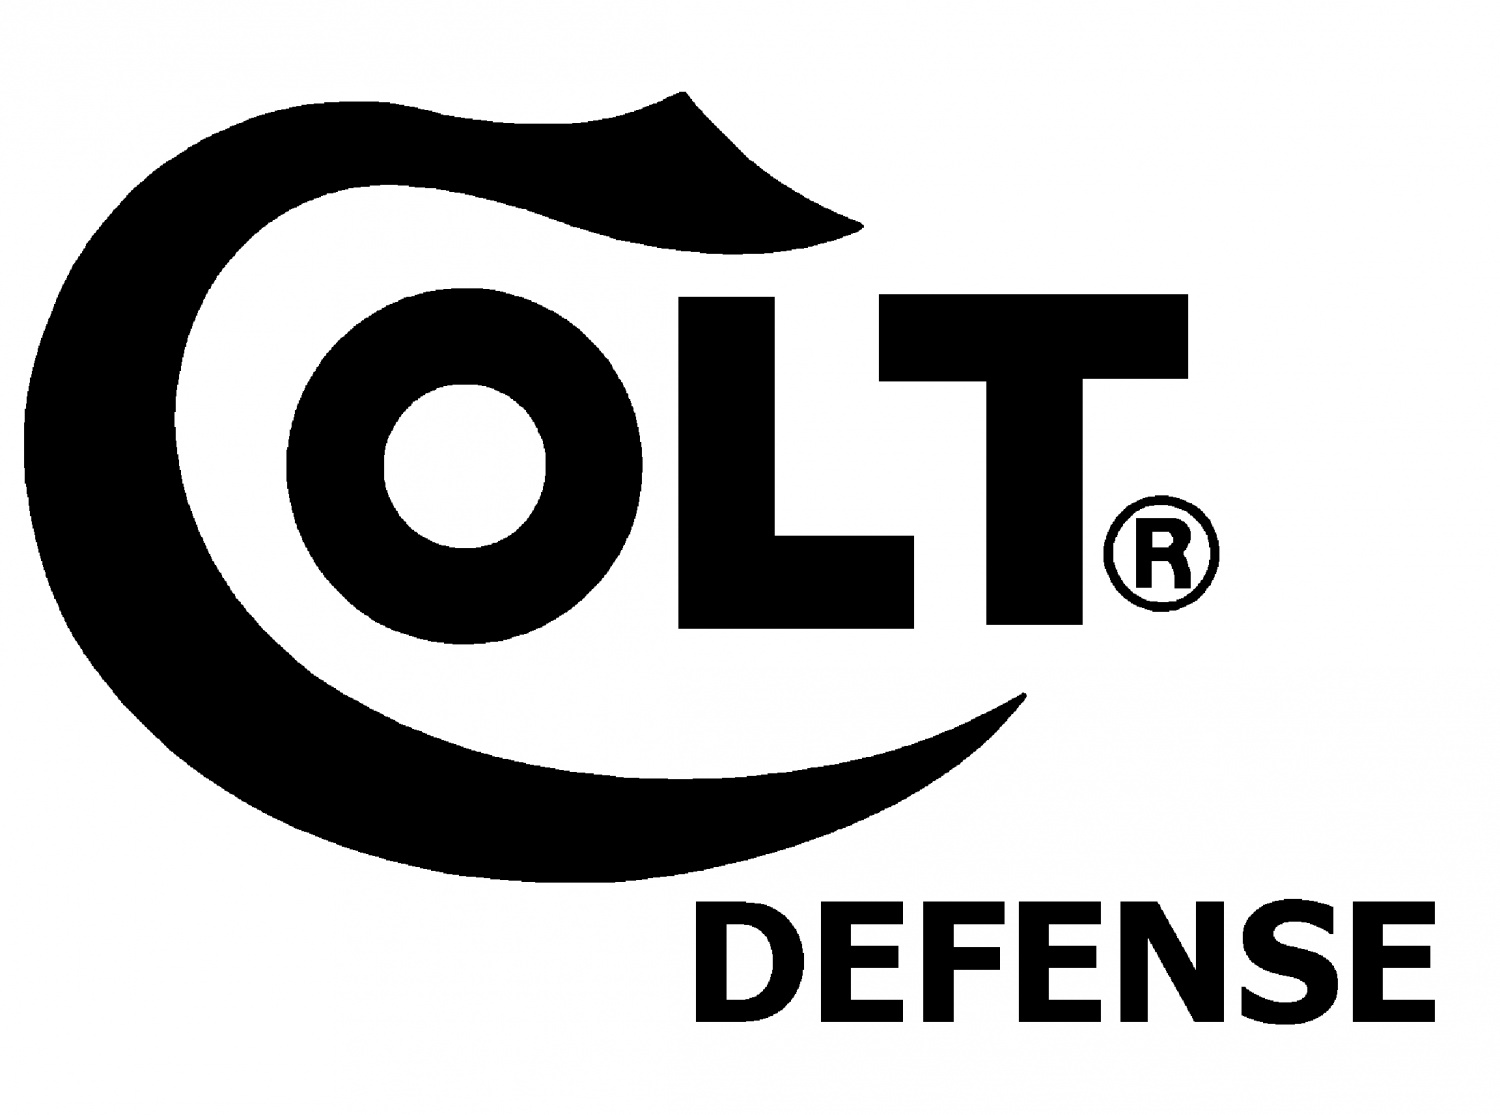 Colt - Colt Defense LLC is a designer, developer and manufacturer of small arms weapons systems for individual soldiers and law enforcement personnel